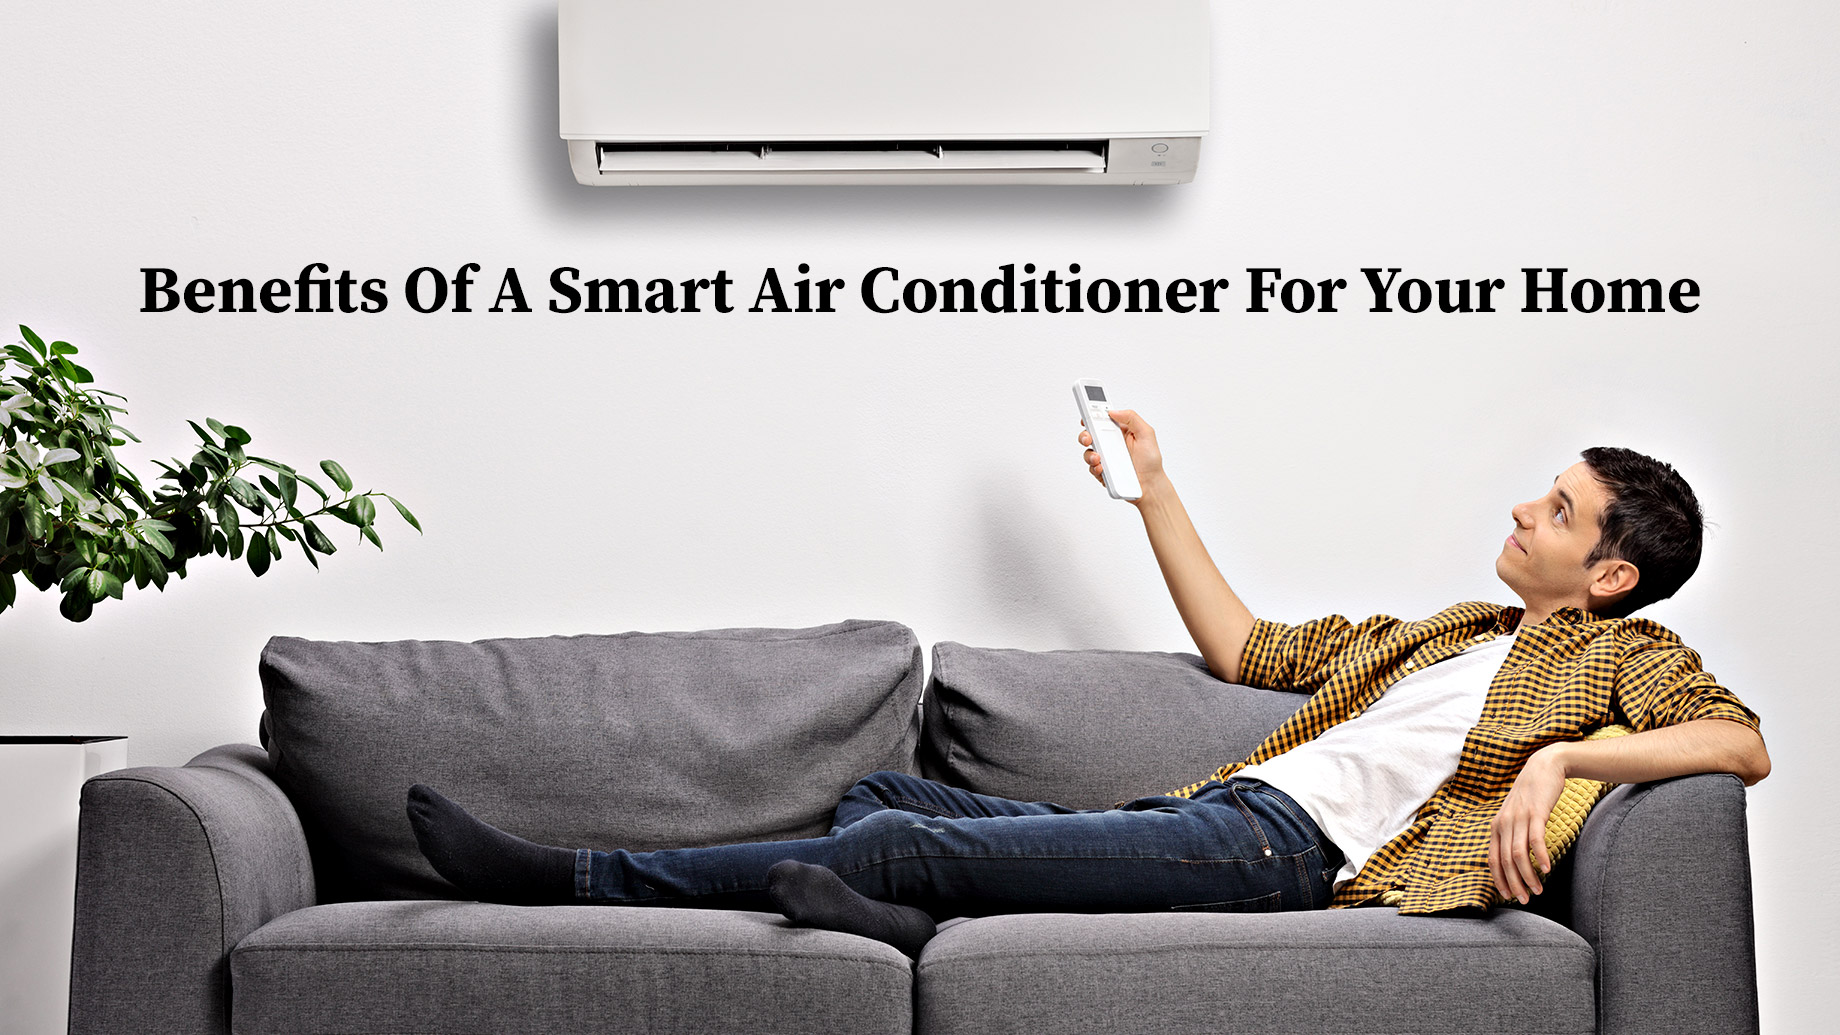 Benefits Of A Smart Air Conditioner For Your Home